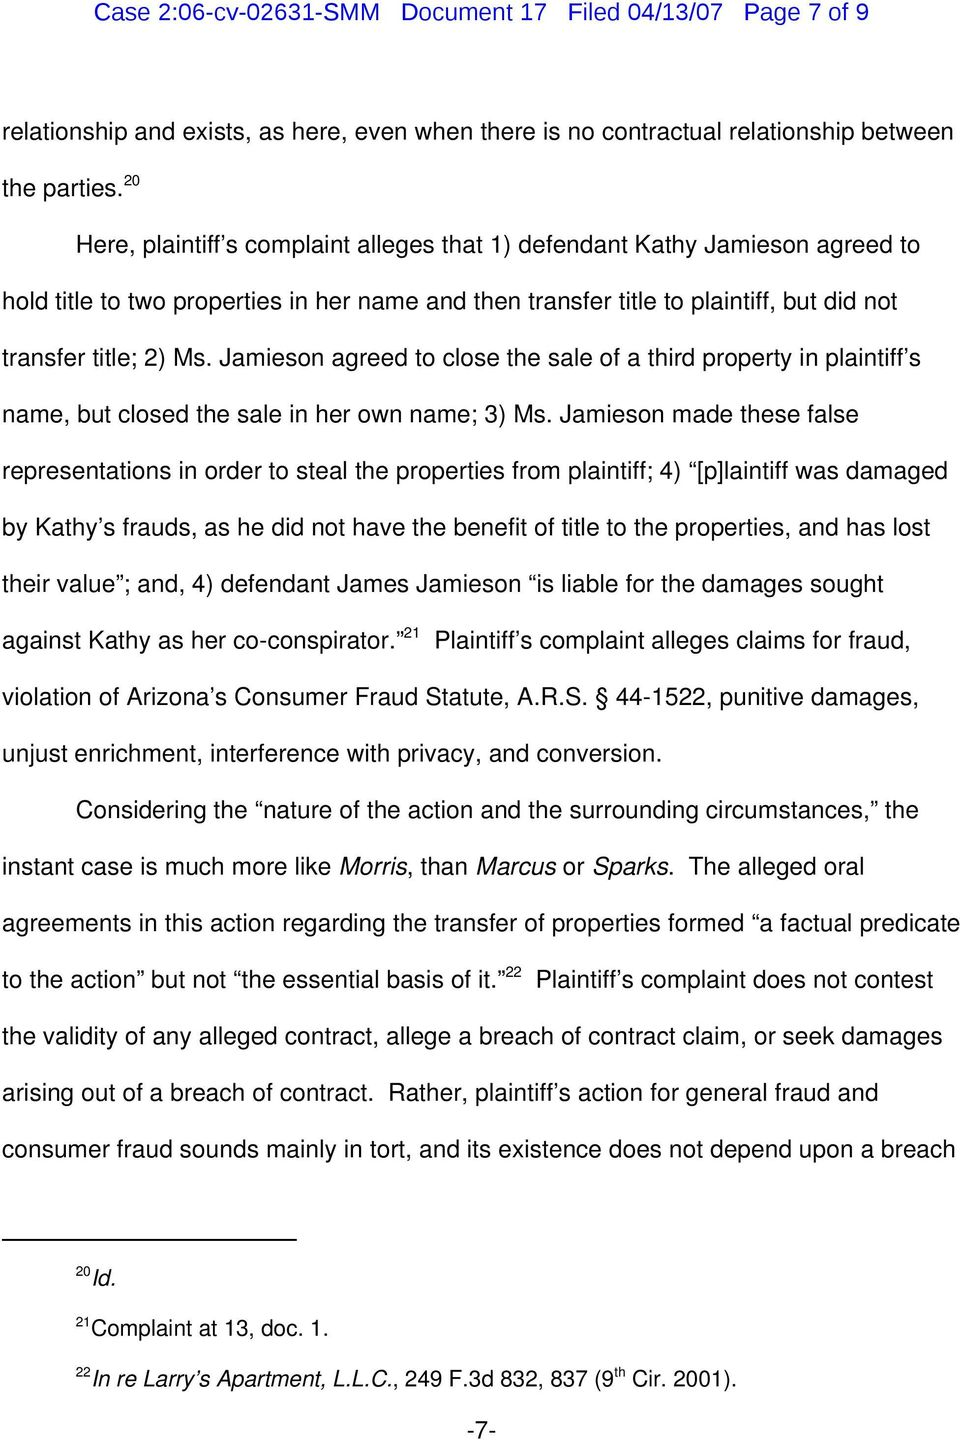 Jamieson agreed to close the sale of a third property in plaintiff s name, but closed the sale in her own name; 3 Ms.